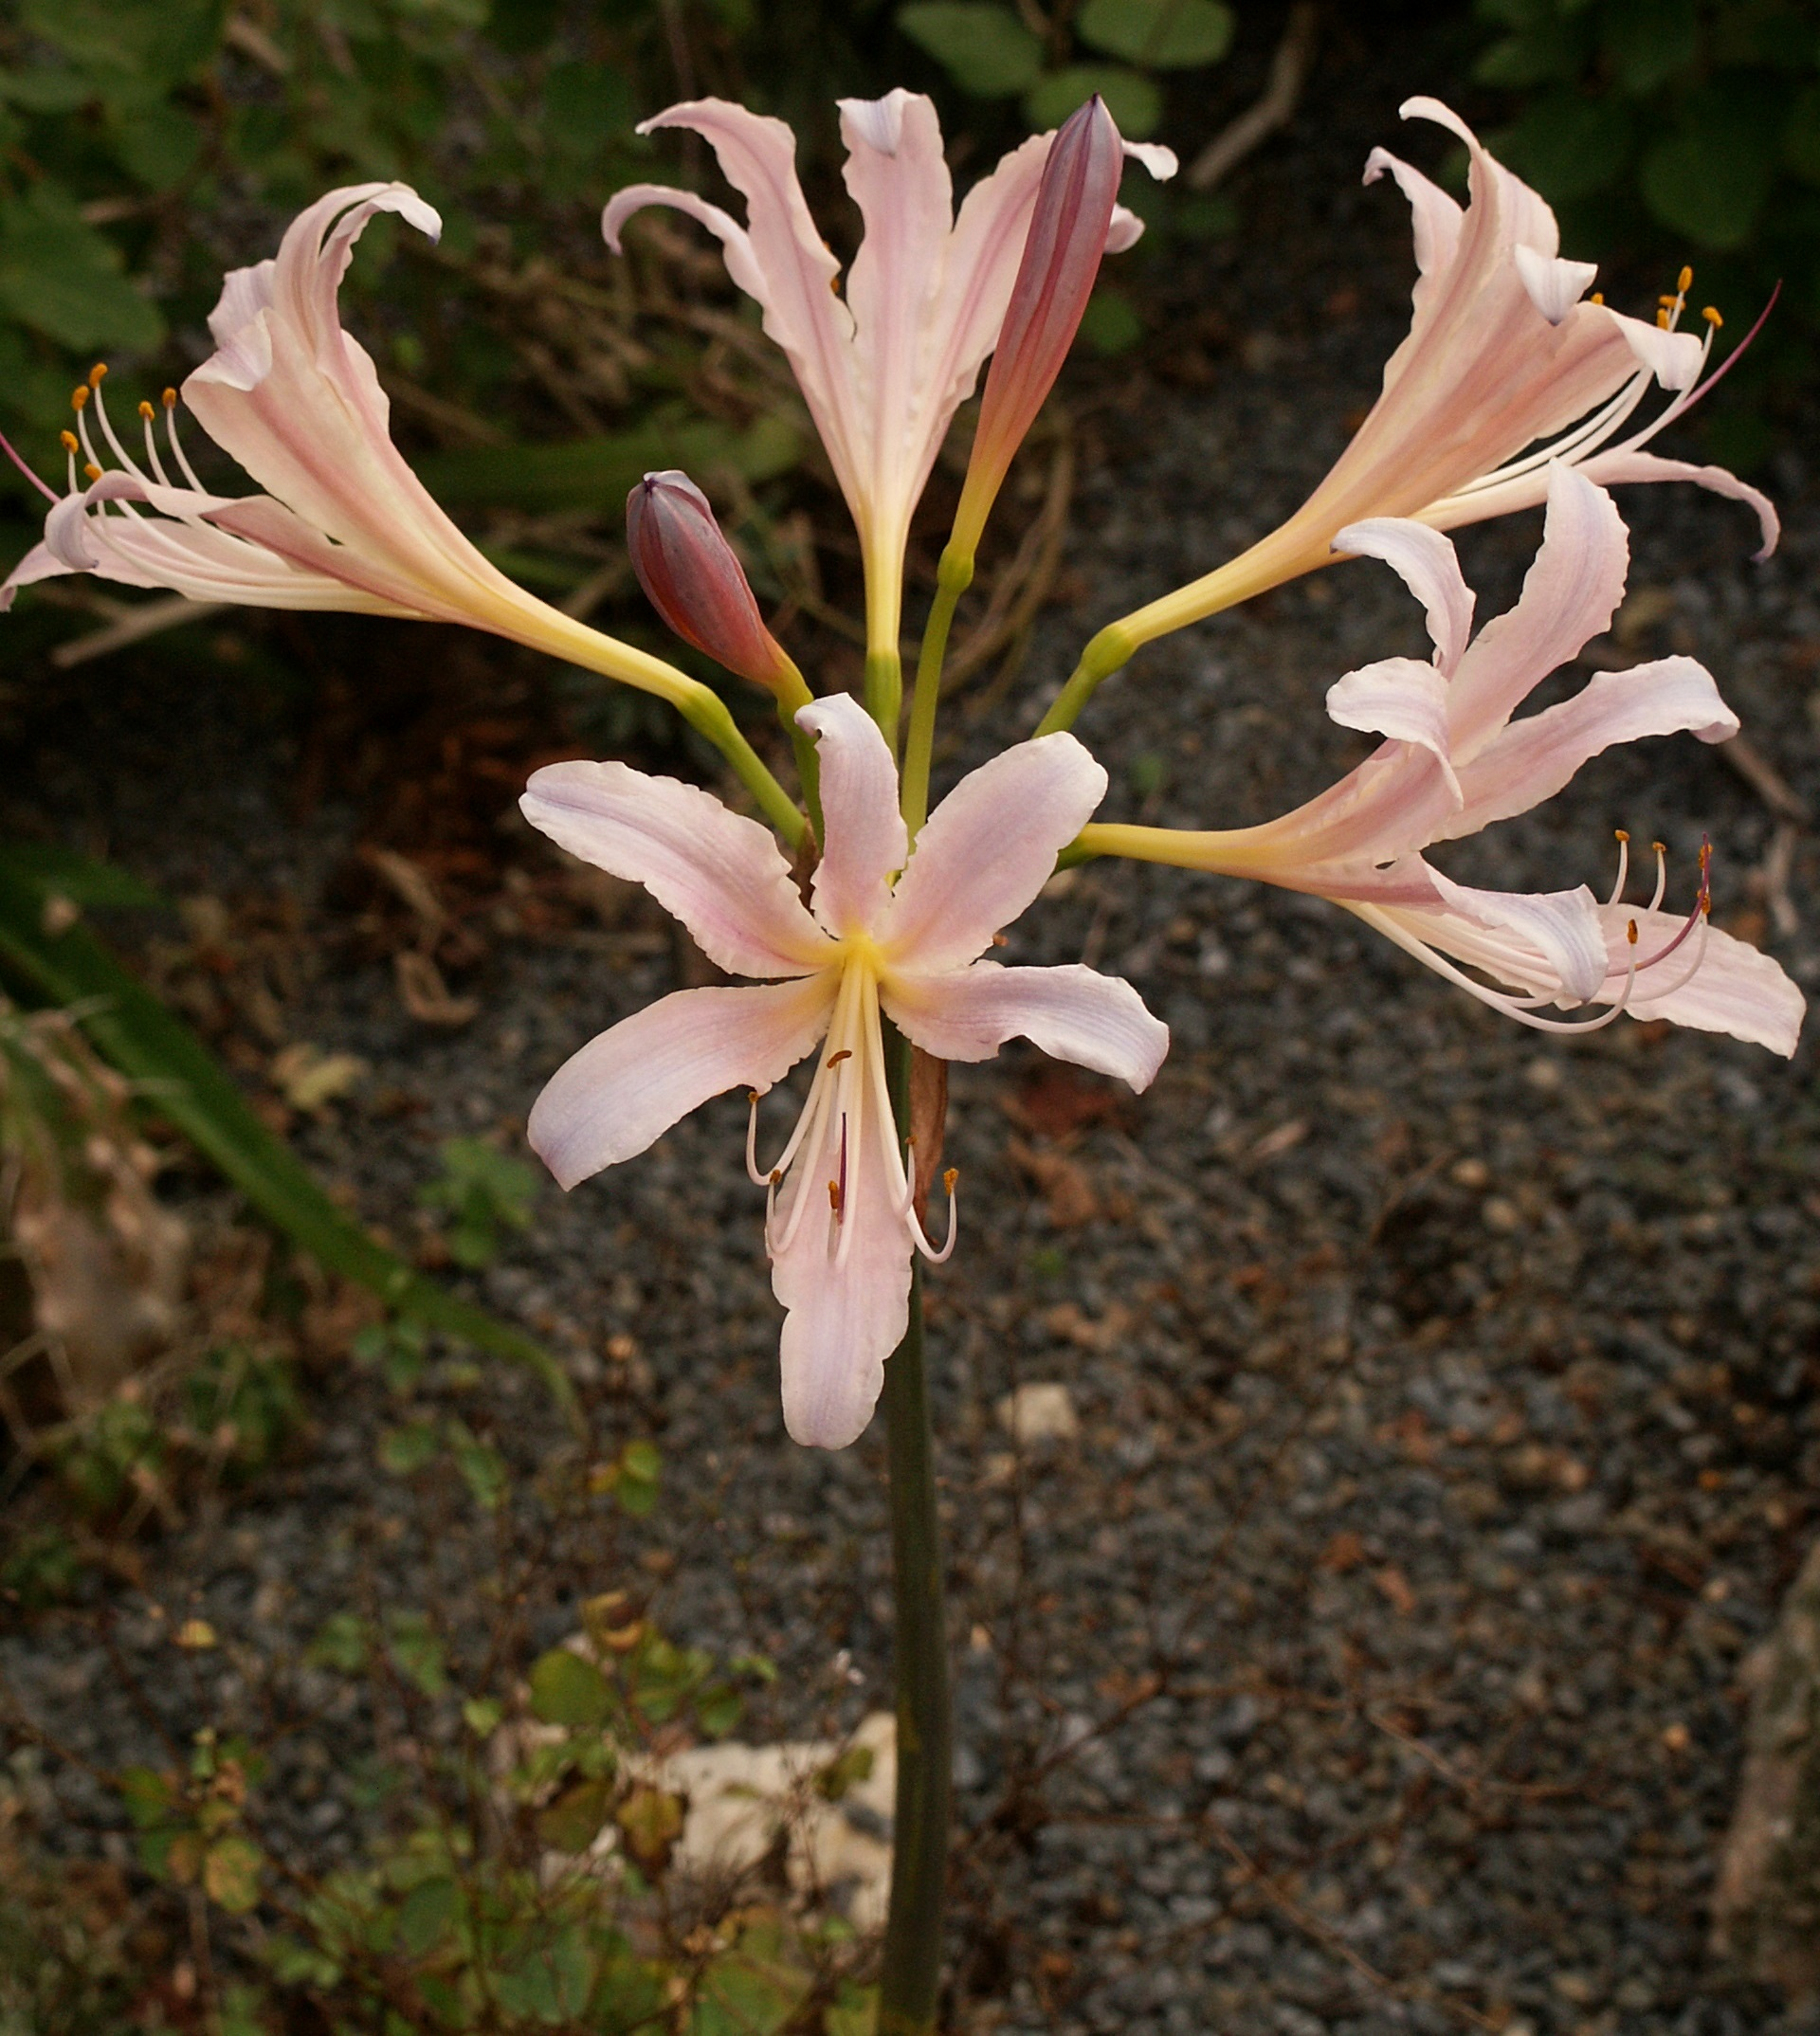 Lycoris x sprengensis 'Summer Sunrise' @ JLBG - a Phil Adams hybrid of Lycoris sprengeri x chinensis - named by JLBG/PDN